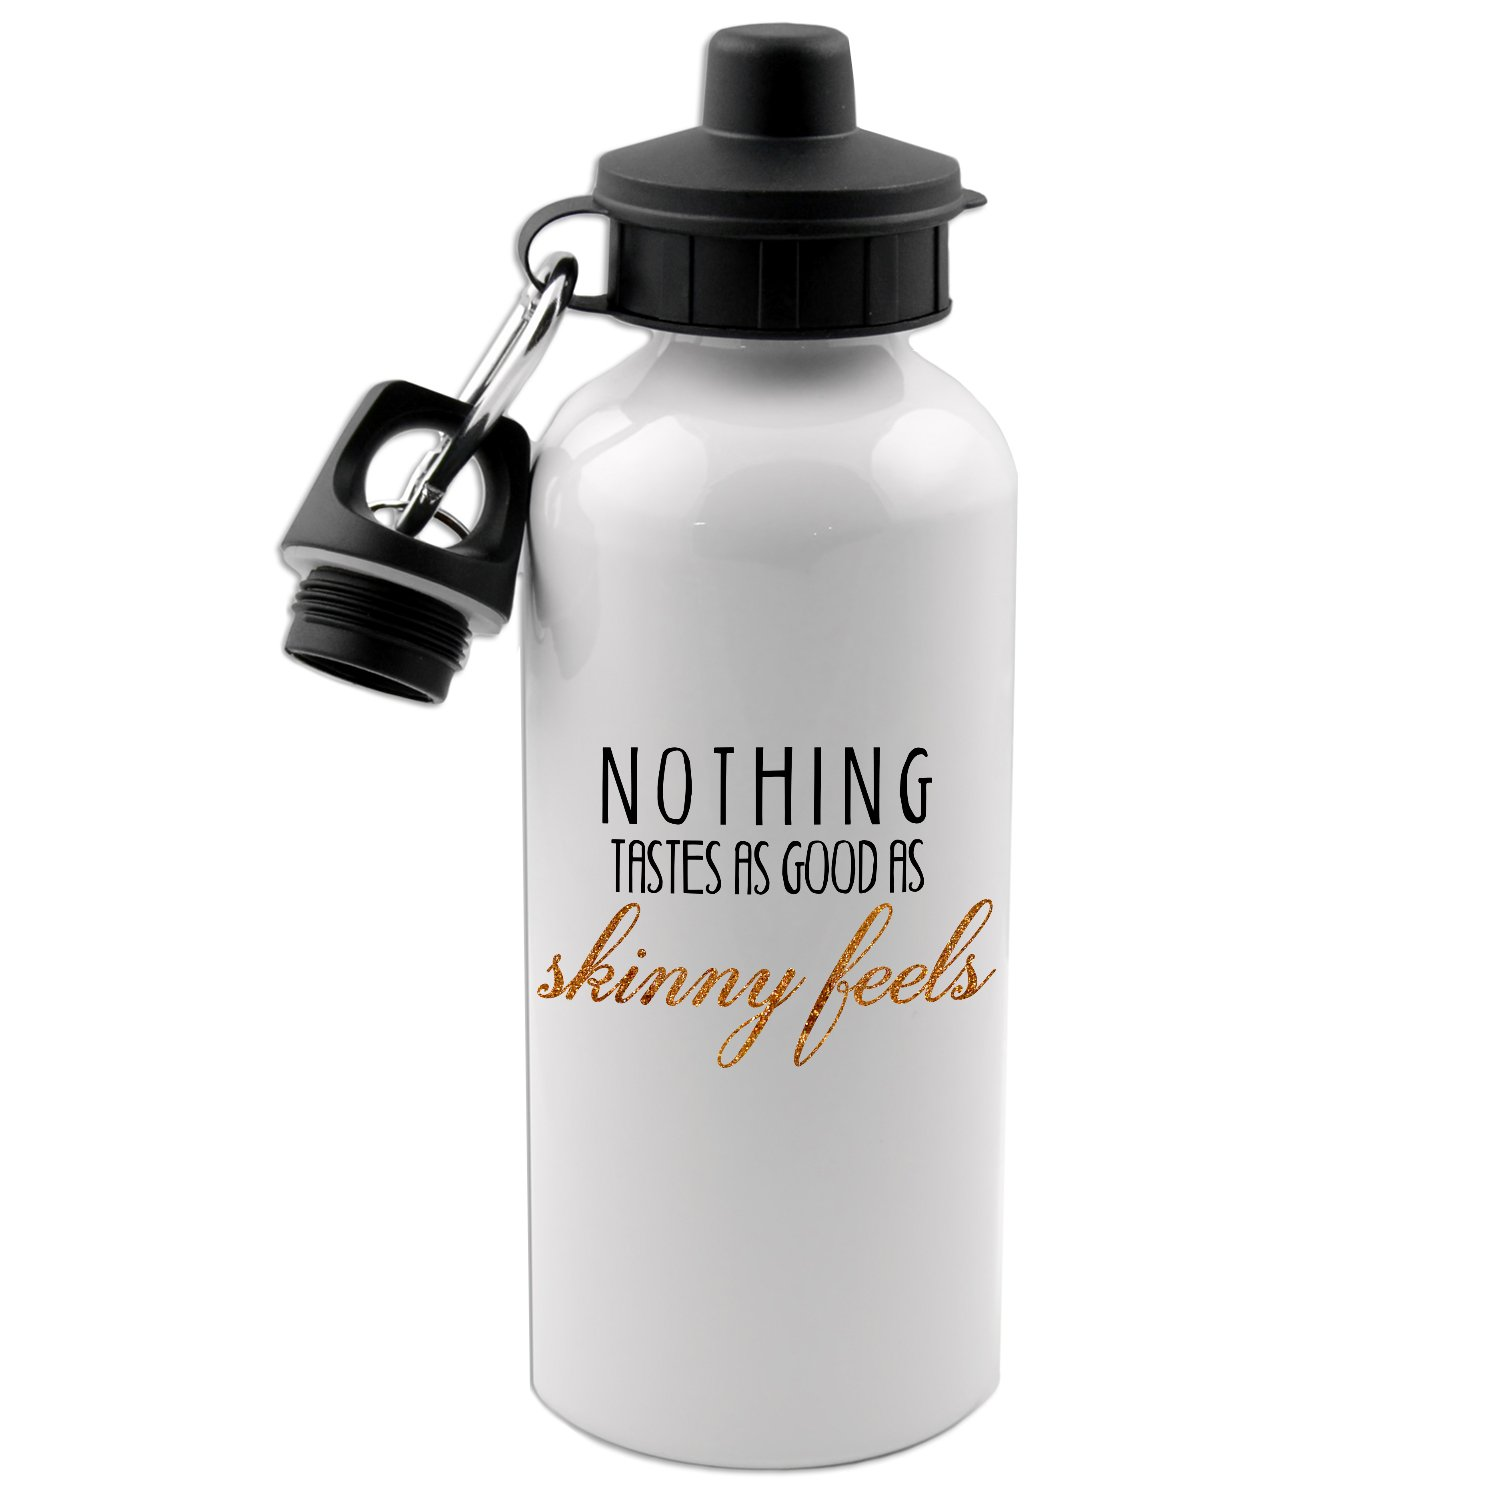 Nothing Tastes As Good As Skinny Feels 20 Oz White Aluminum Water Bottle Decal Serpent